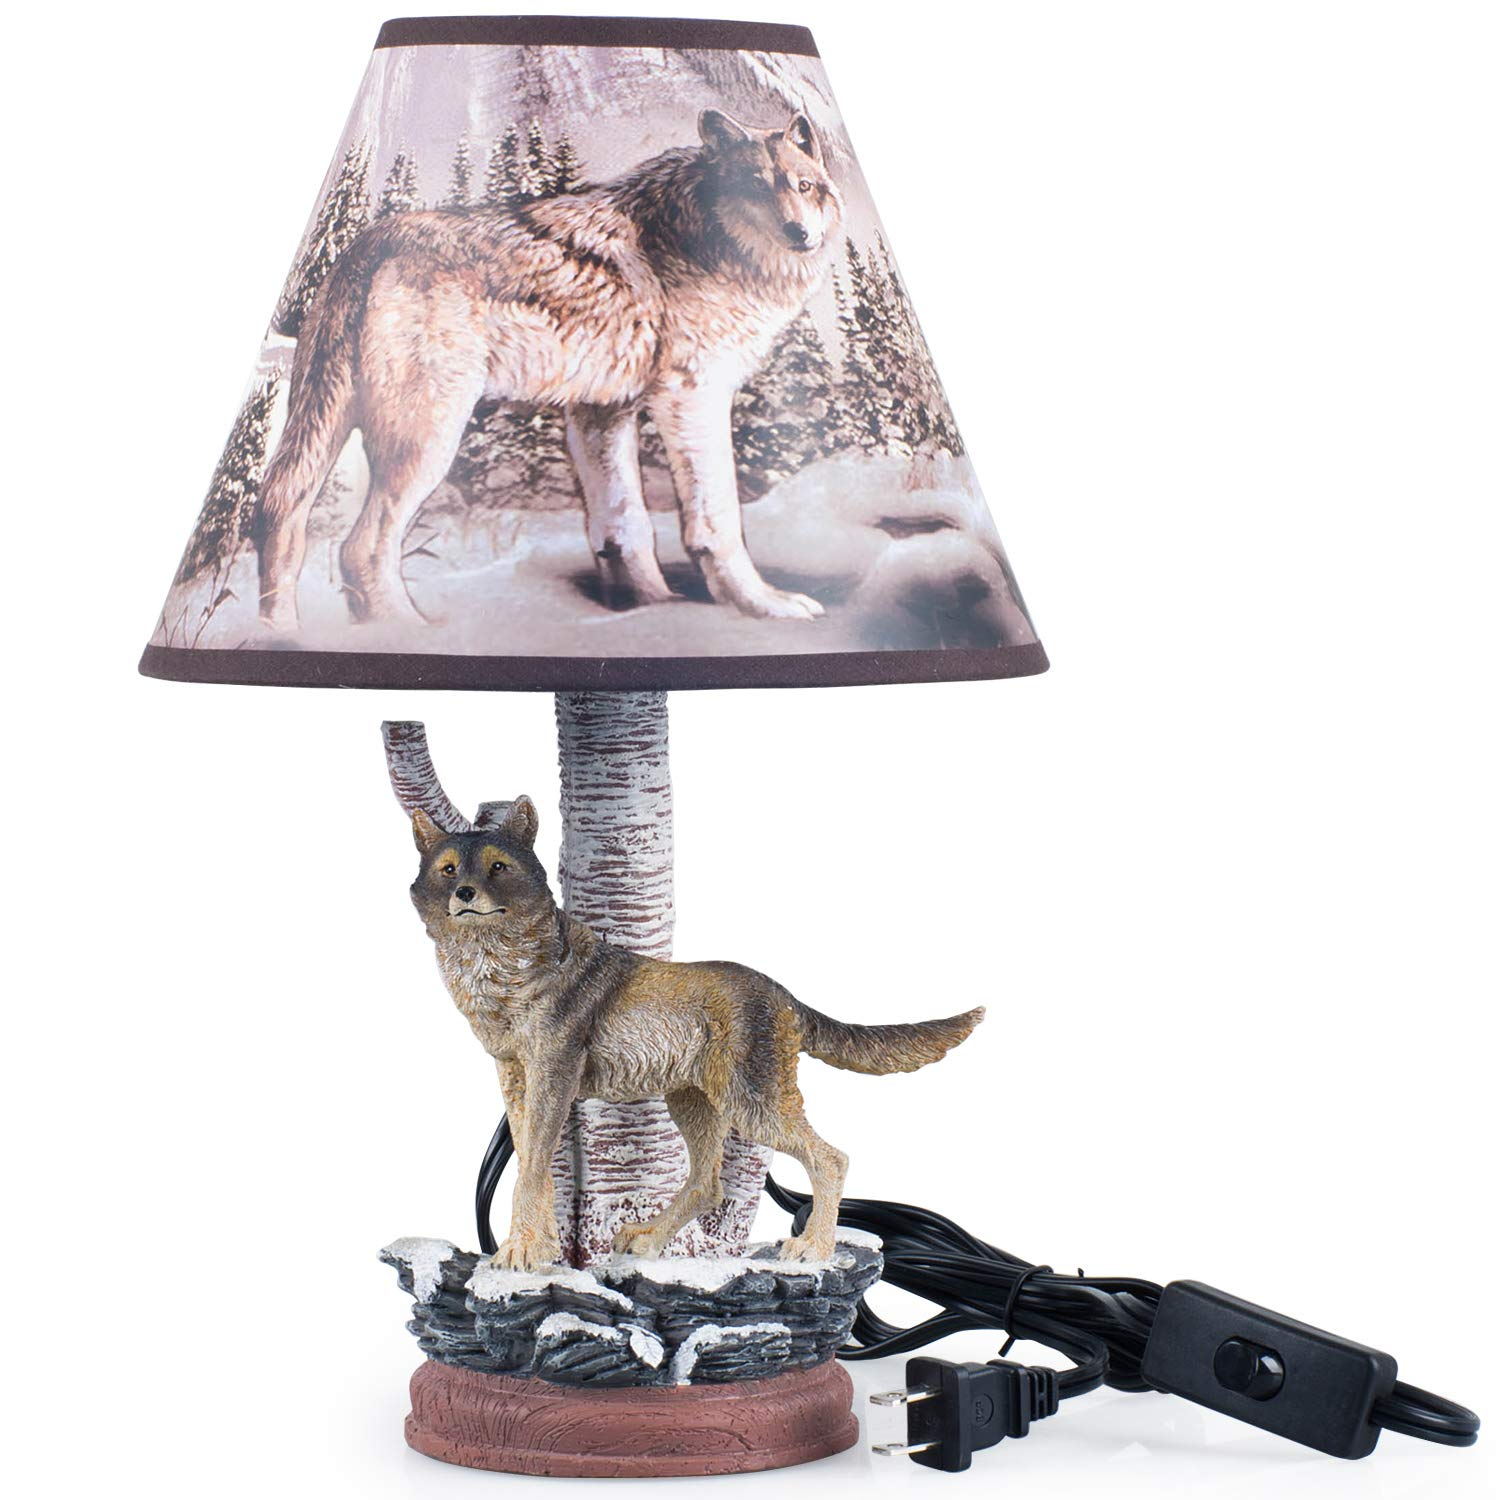 Lamps for Bedrooms Kids, Nursery Wolf Thematic Hand Painted Non-Toxic, Lead Free Water-Based Paint